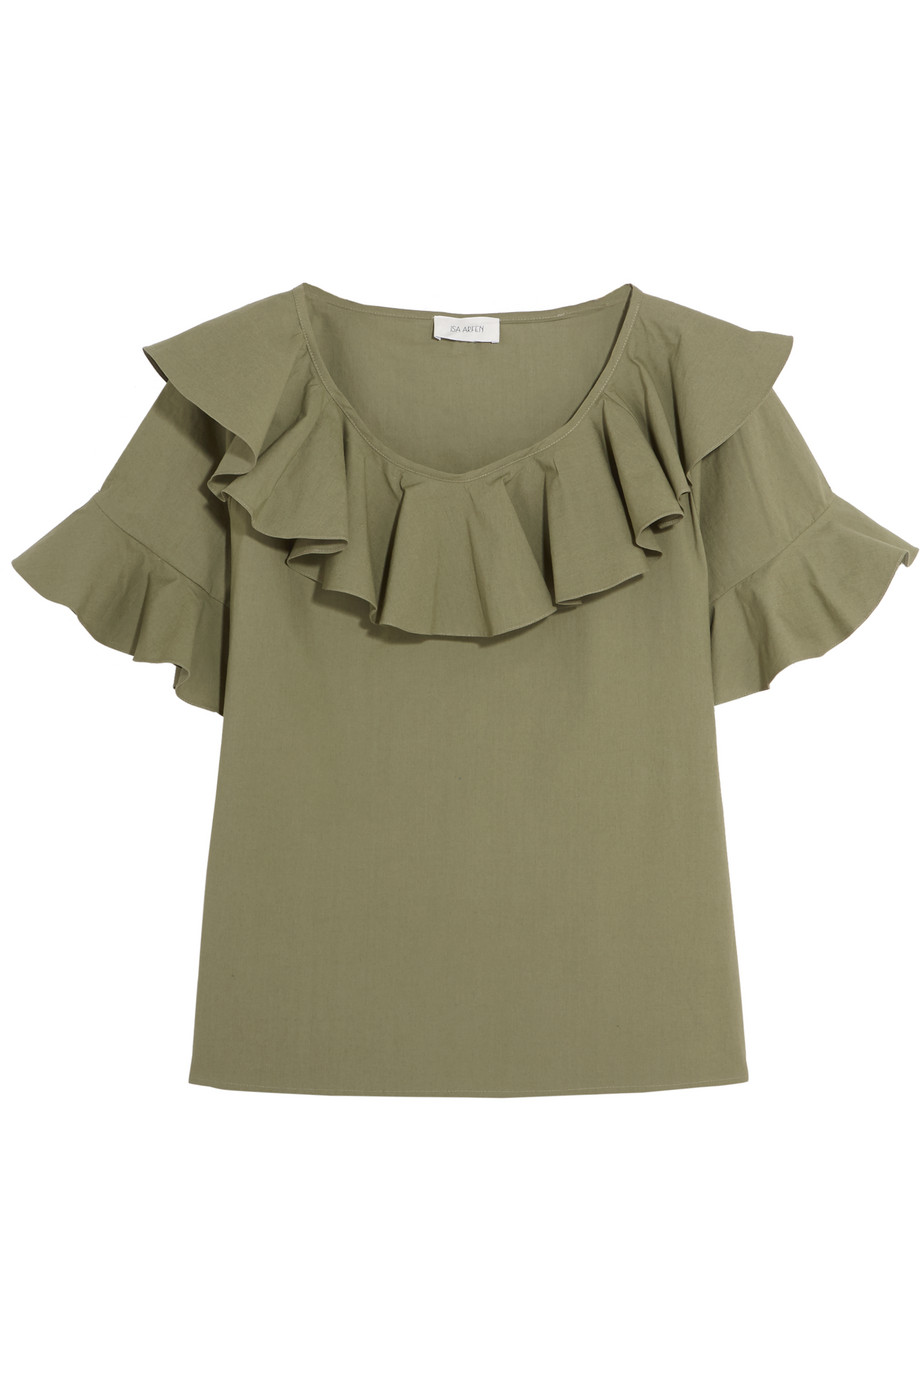 Isa Arfen Florence Ruffled Stretch-Cotton Top, Army Green, Women's, Size: 6